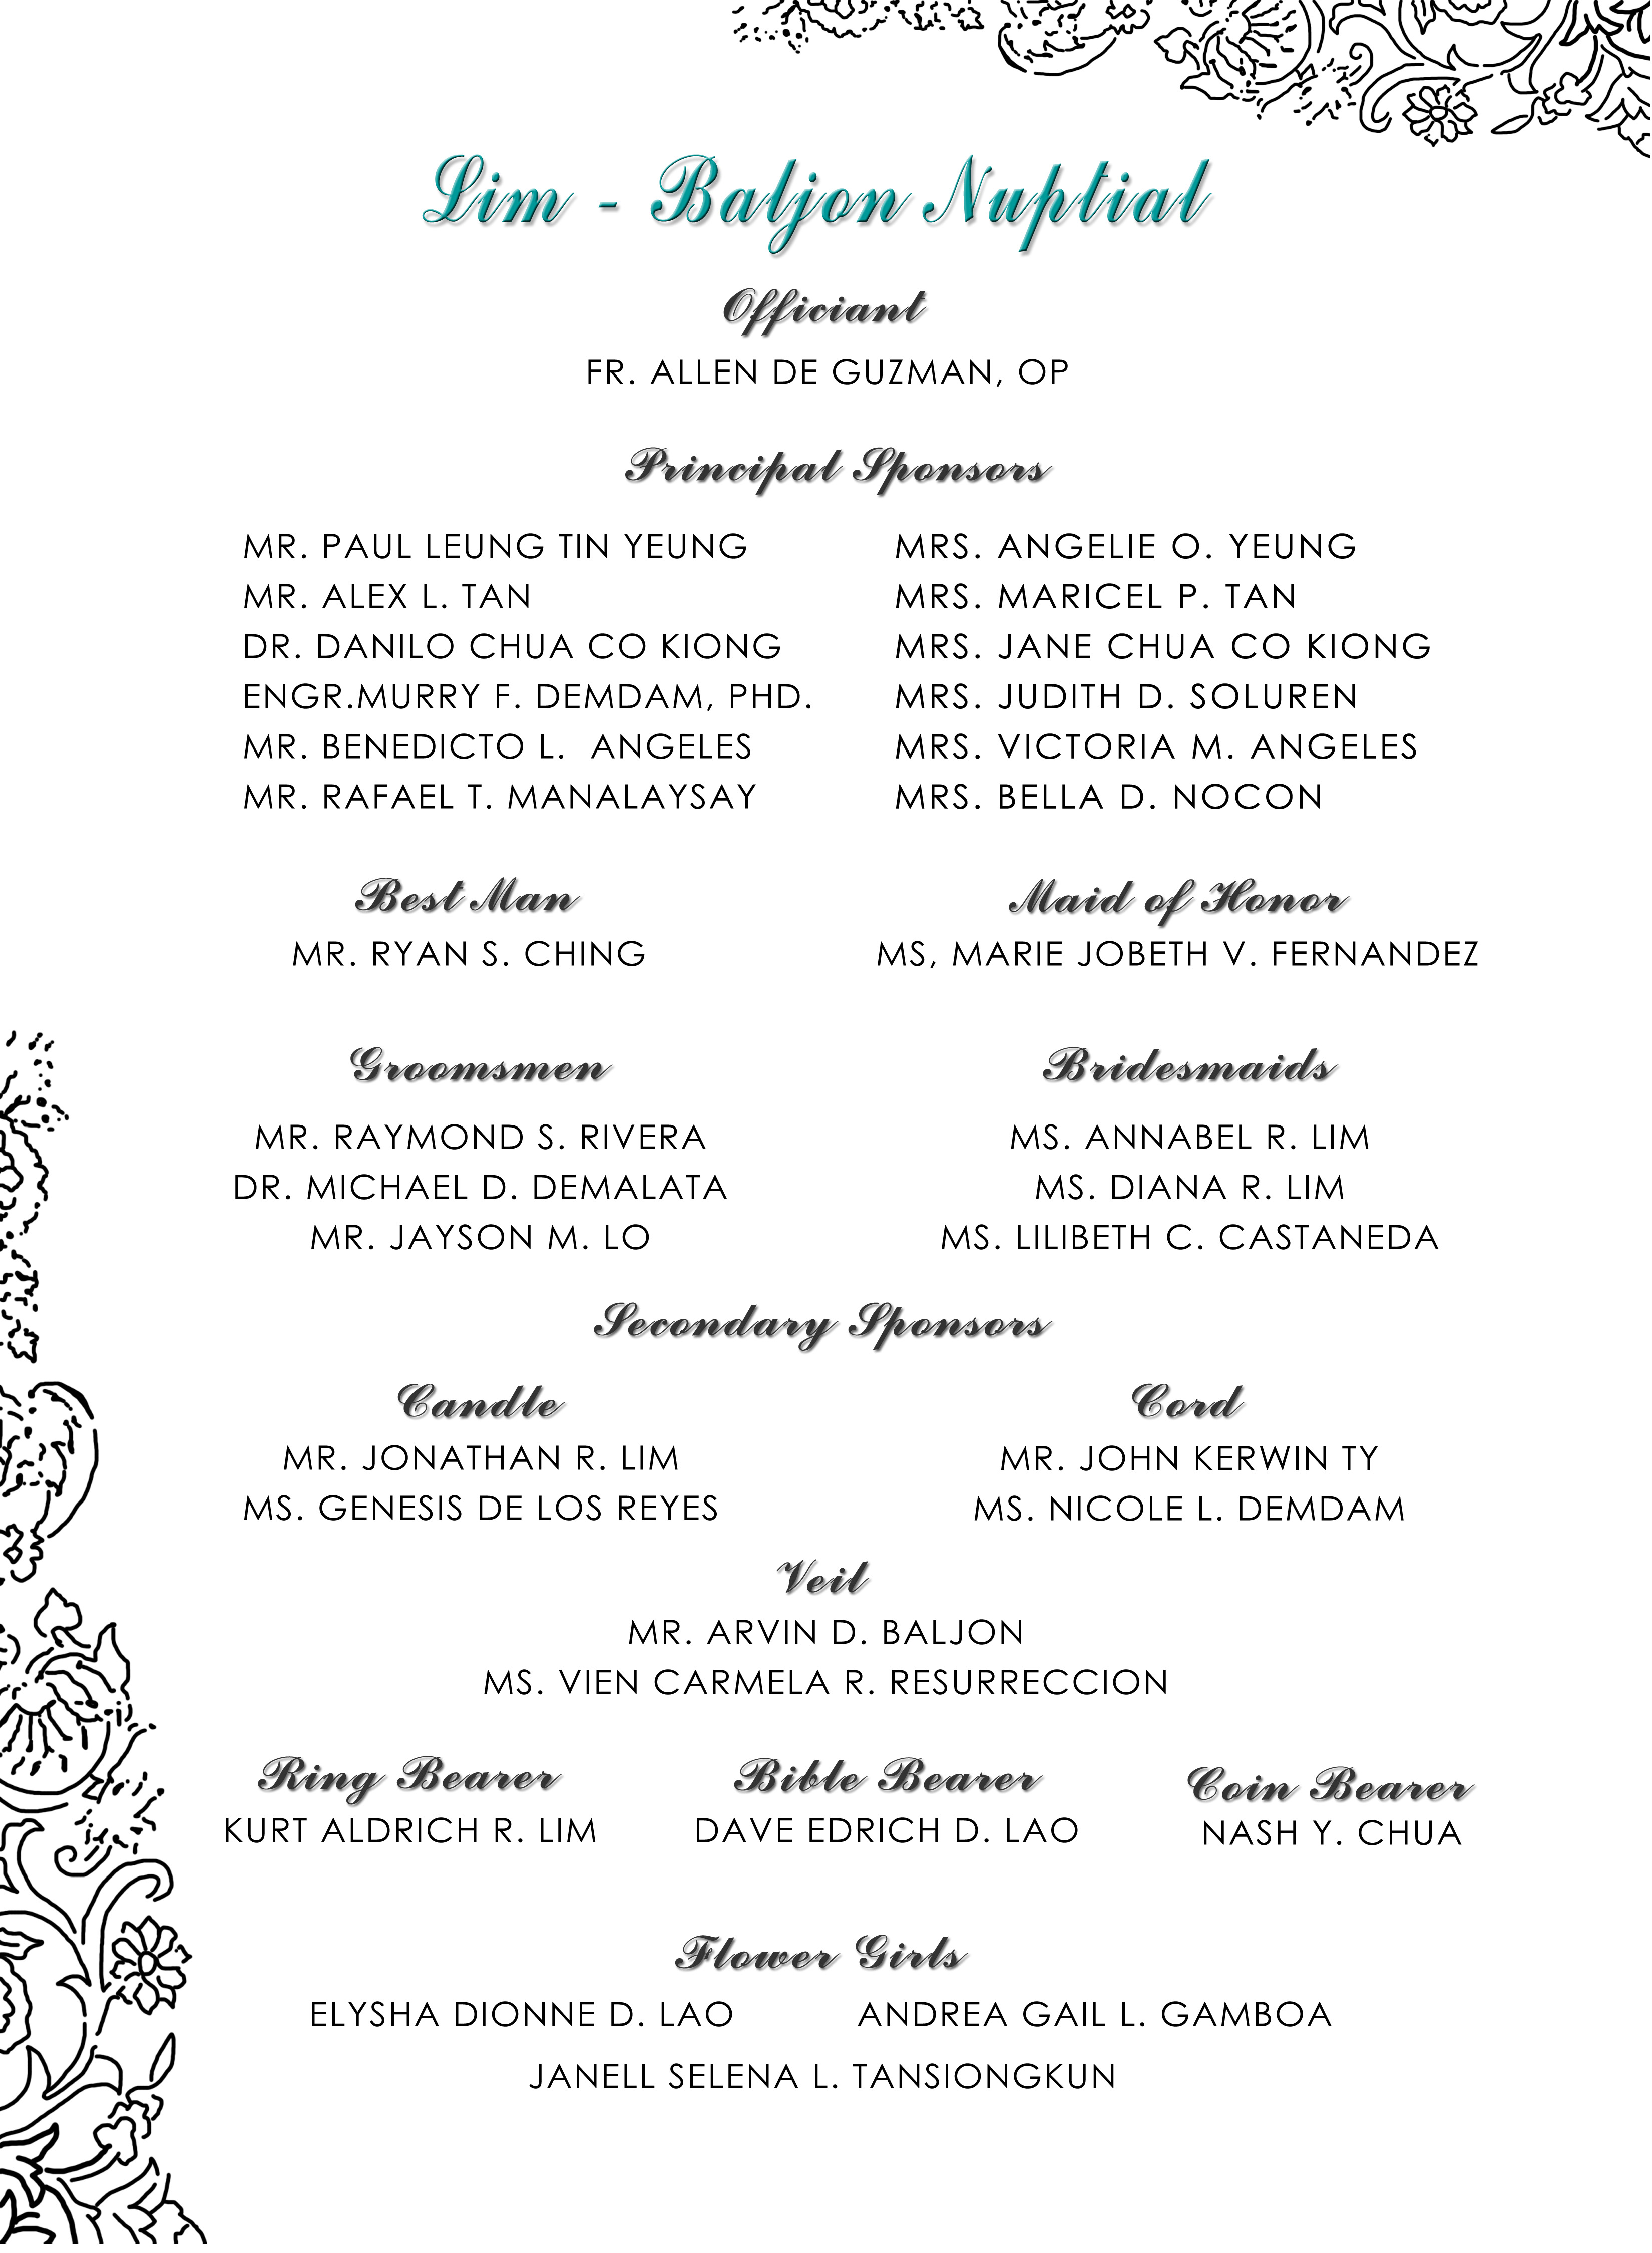 invitation_page3_sponsors  Andrew  Madel The Wedding